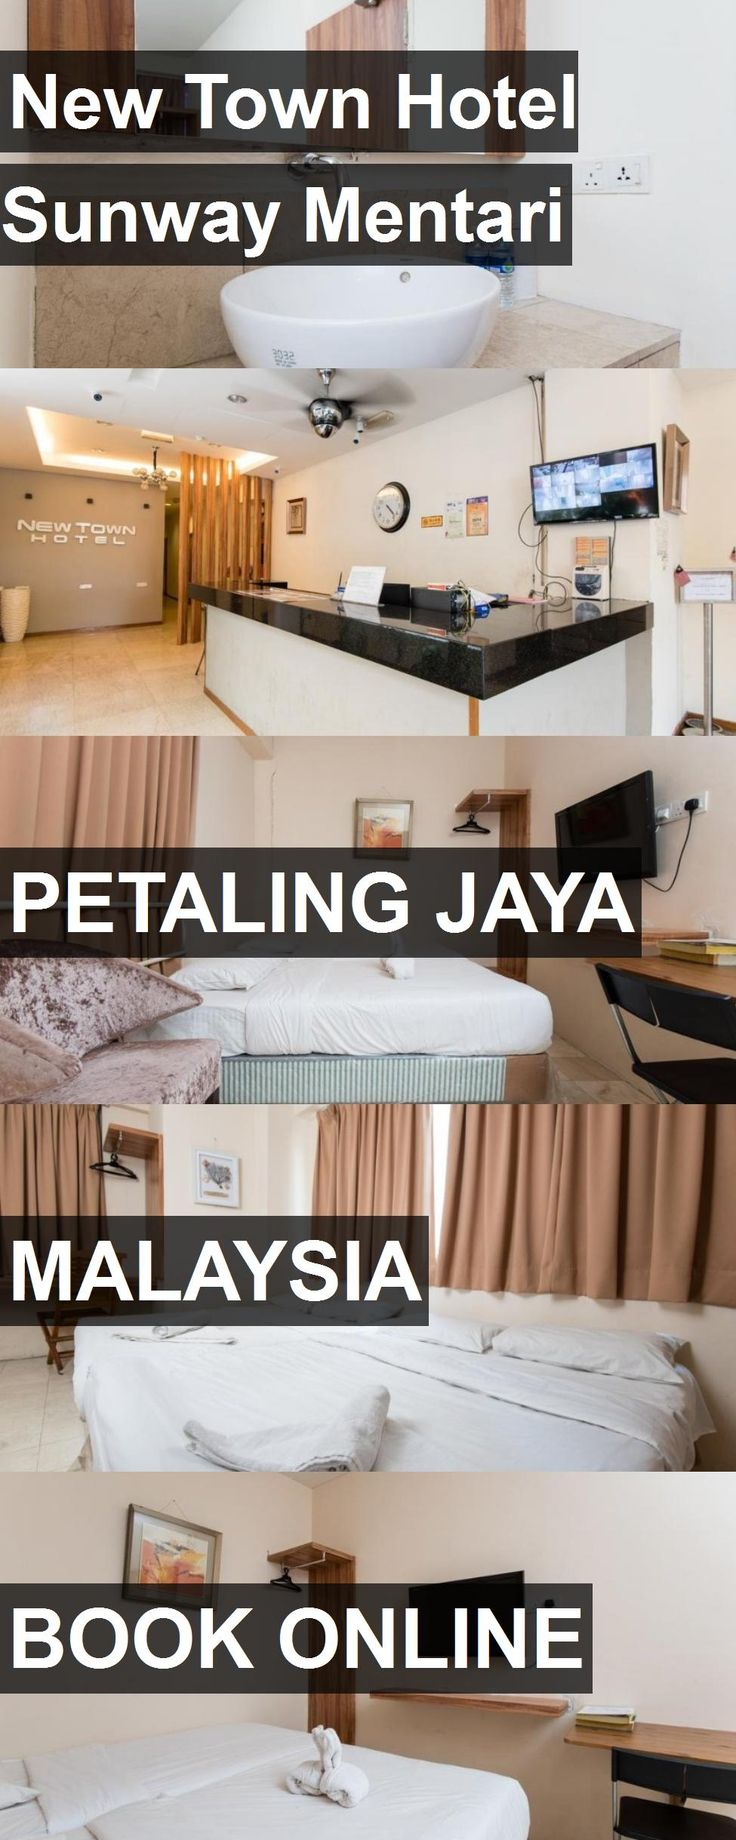 New Town Hotel Sunway Mentari in Petaling Jaya, Malaysia. For more information, photos, reviews and best prices please follow the link. #Malaysia #PetalingJaya #travel #vacation #hotel